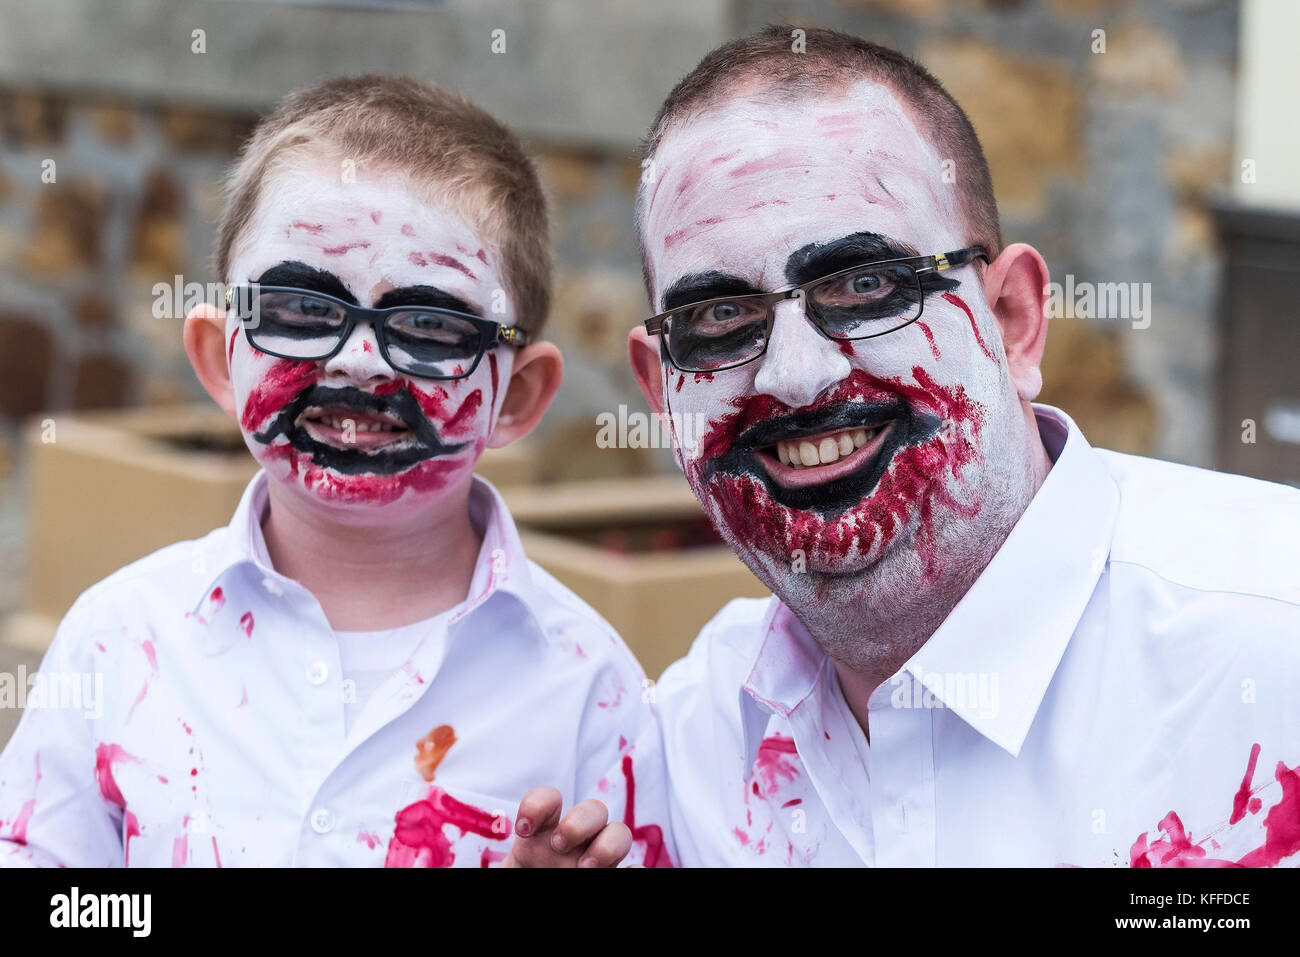 Fistral Beach; Newquay, Cornwall. 28th October, 2017. Hundreds of zombies invade Newquay in Cornwall. The - Stock Image